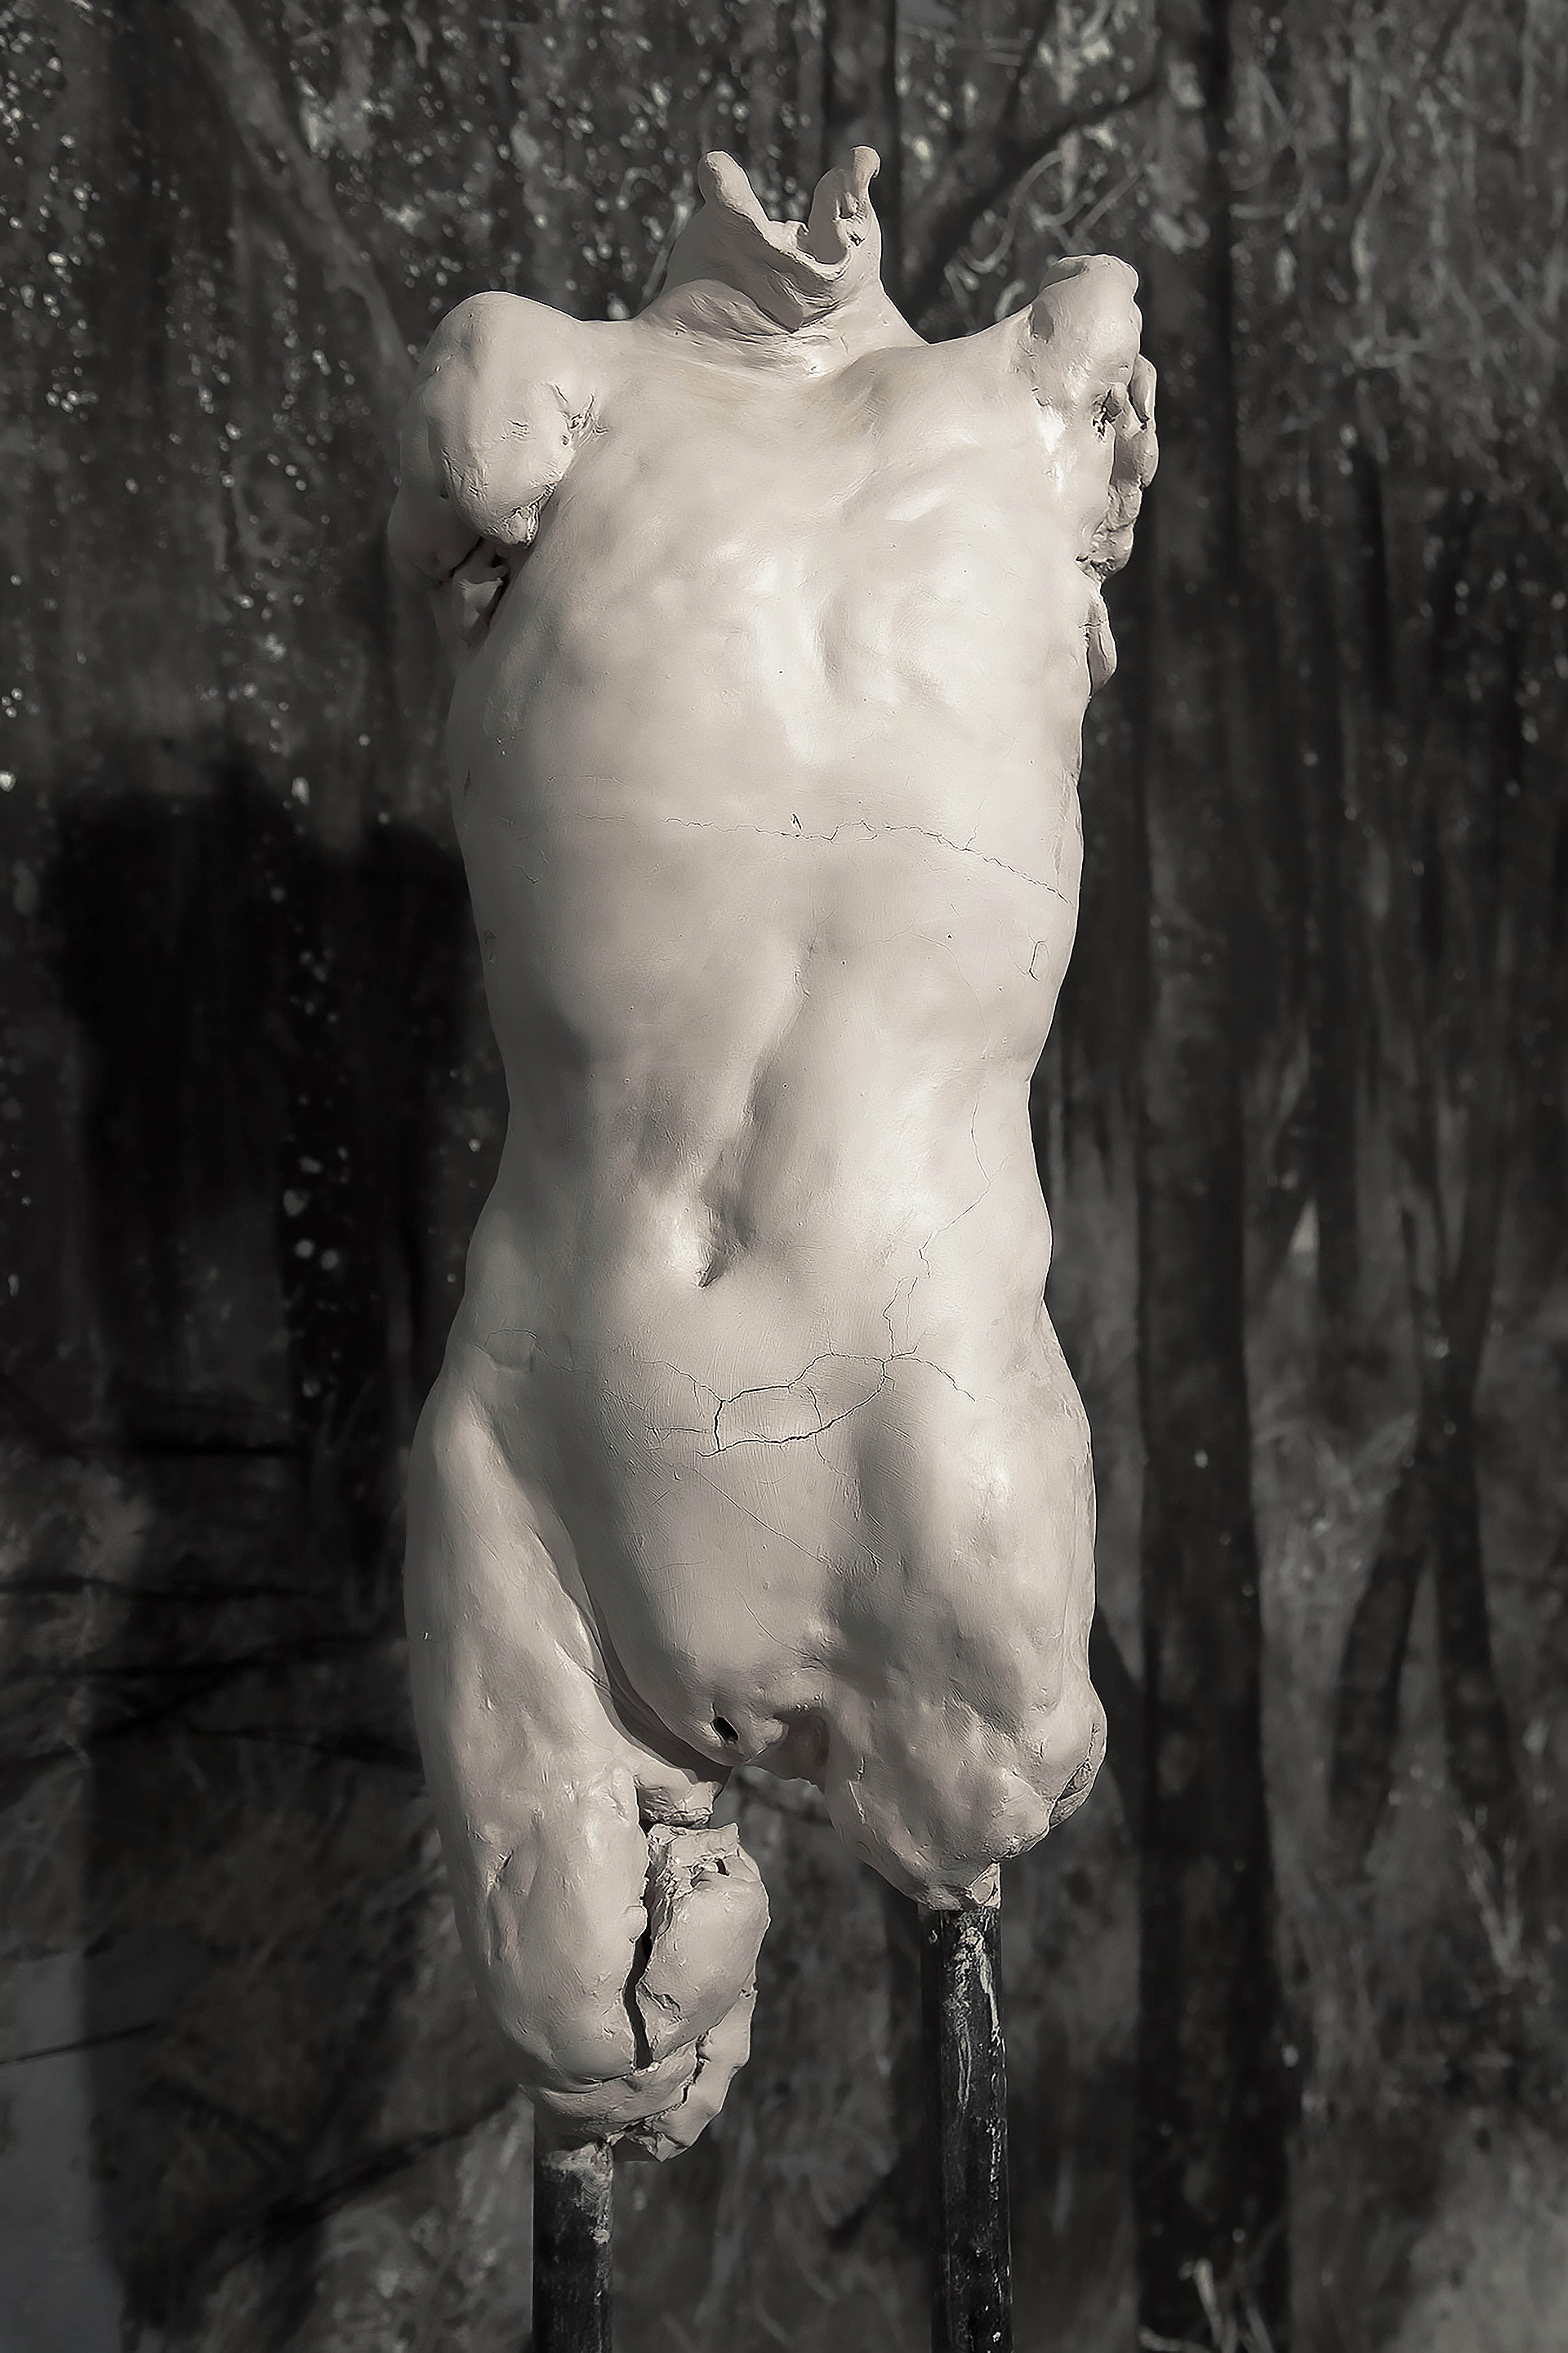 Aletheia II,   2015  .   Clay, metal and plaster, 50 x 15 x 15 inches (127 x 38 x 38cm).